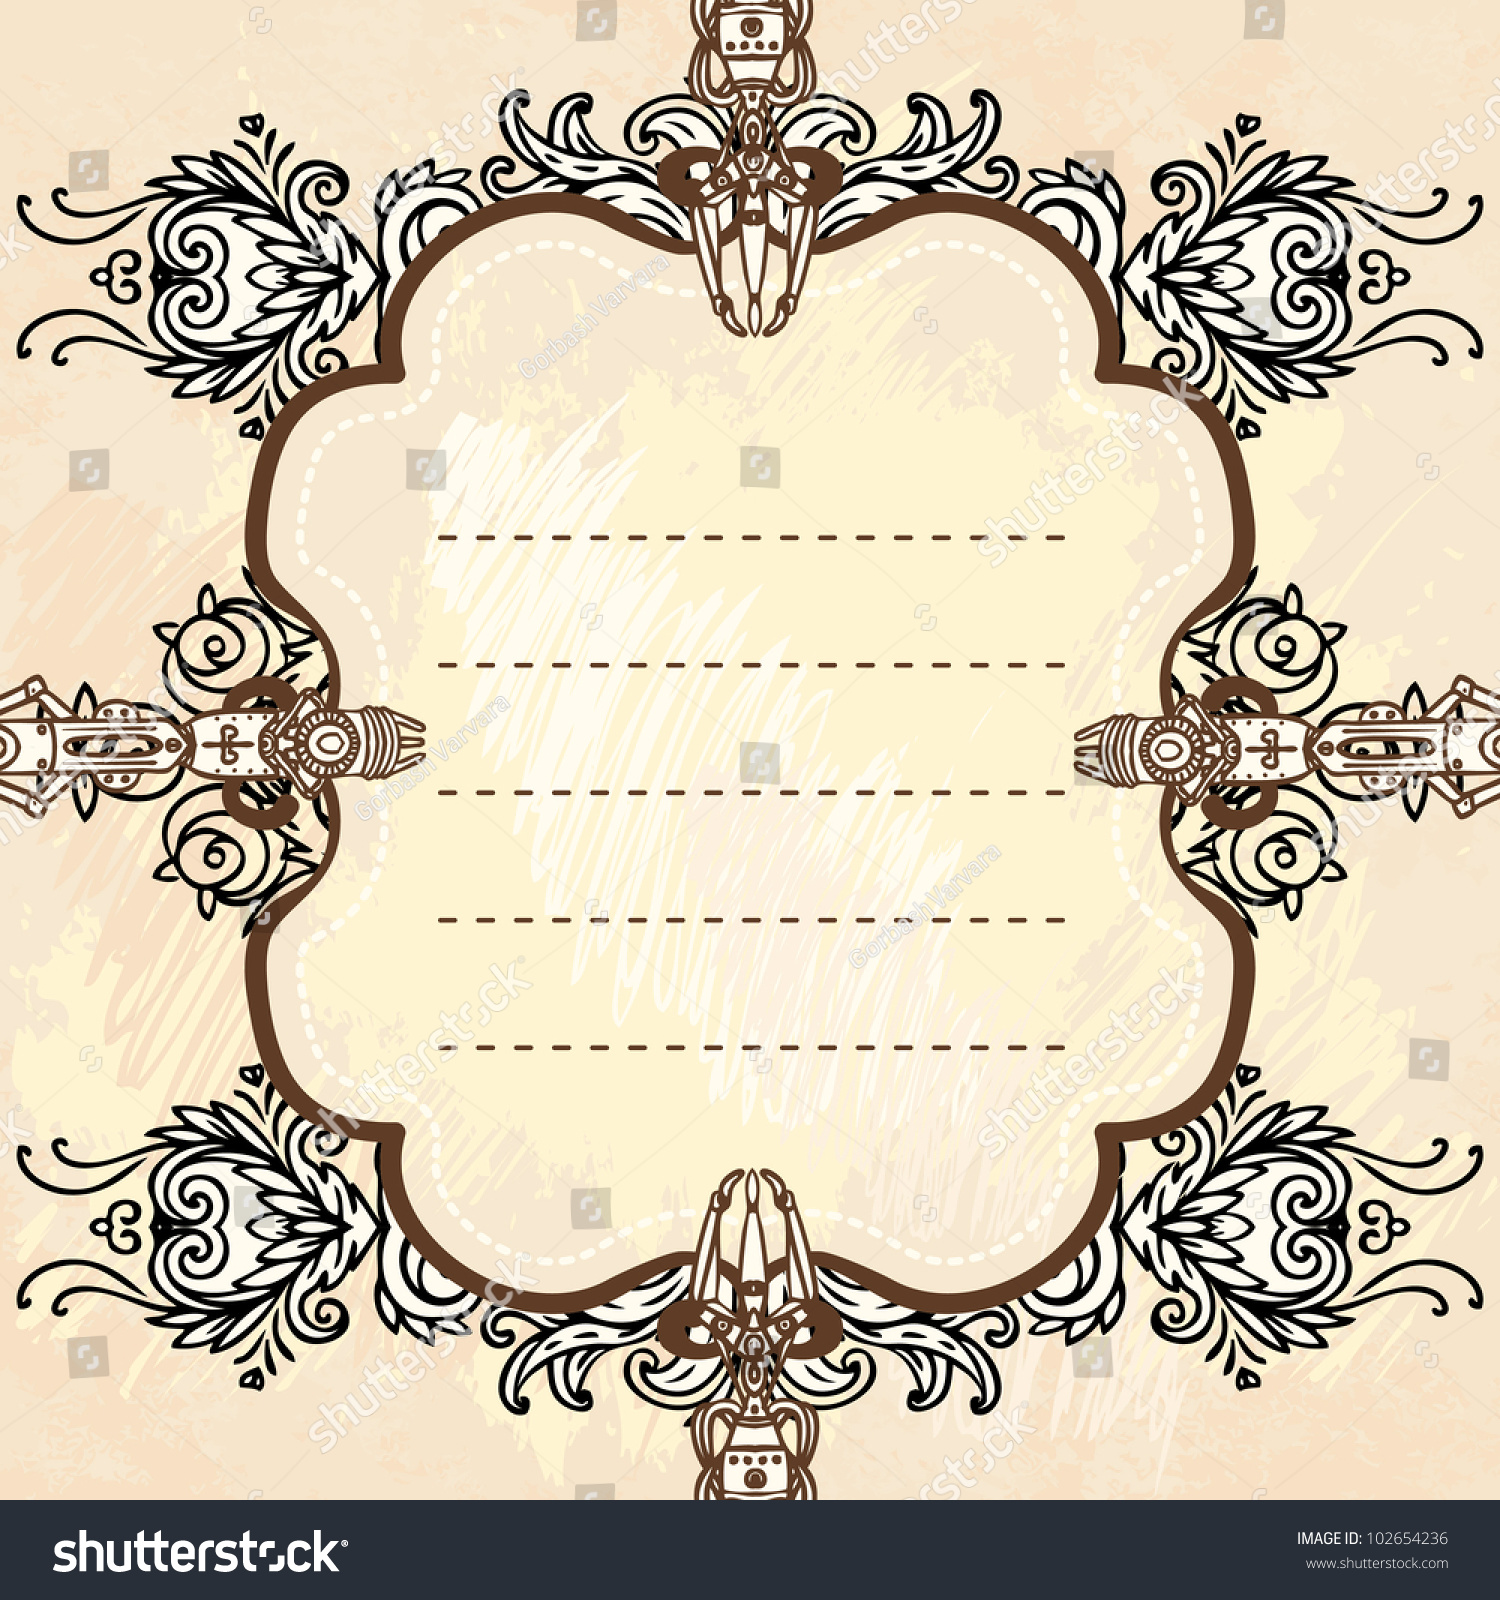 Drawn Industrial Steampunk Style Frame Stock Vector ...